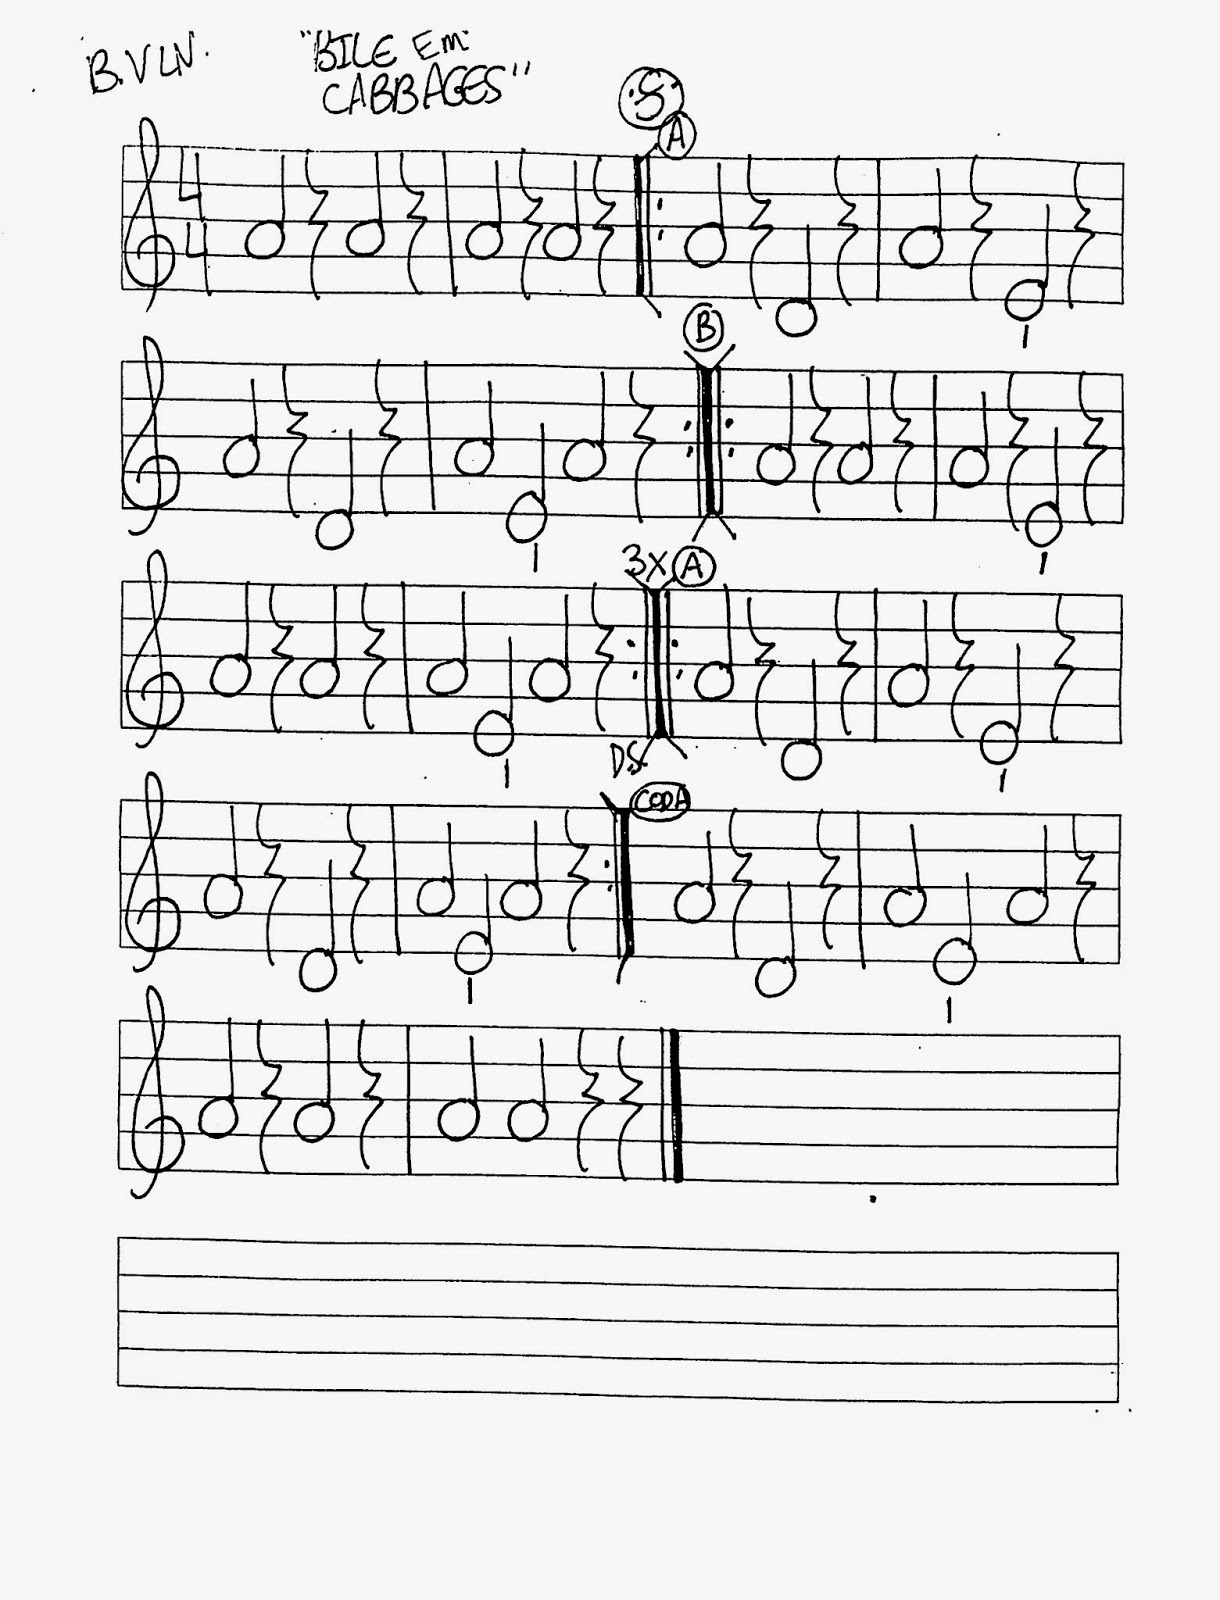 Miss Jacobson's Music: BILE CABBAGES WORKSHEETS FOR